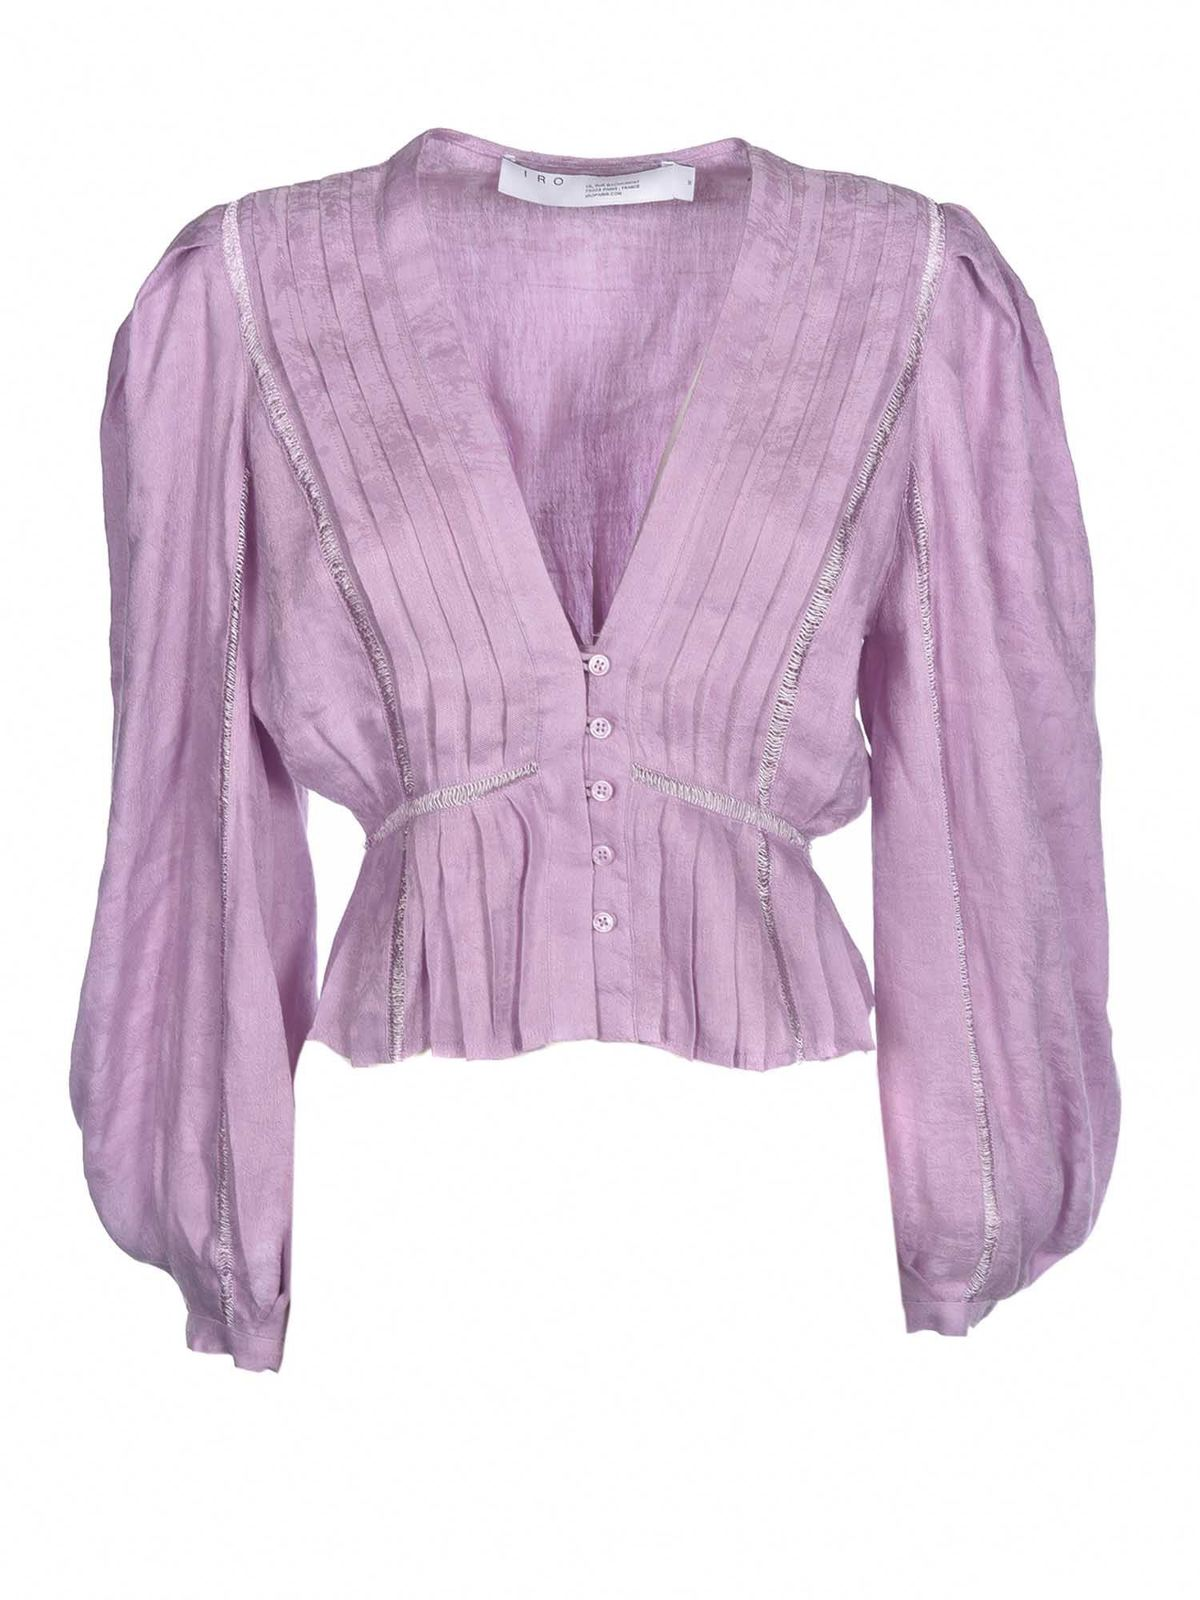 Iro CHIRA SHIRT IN LIGHT PURPLE